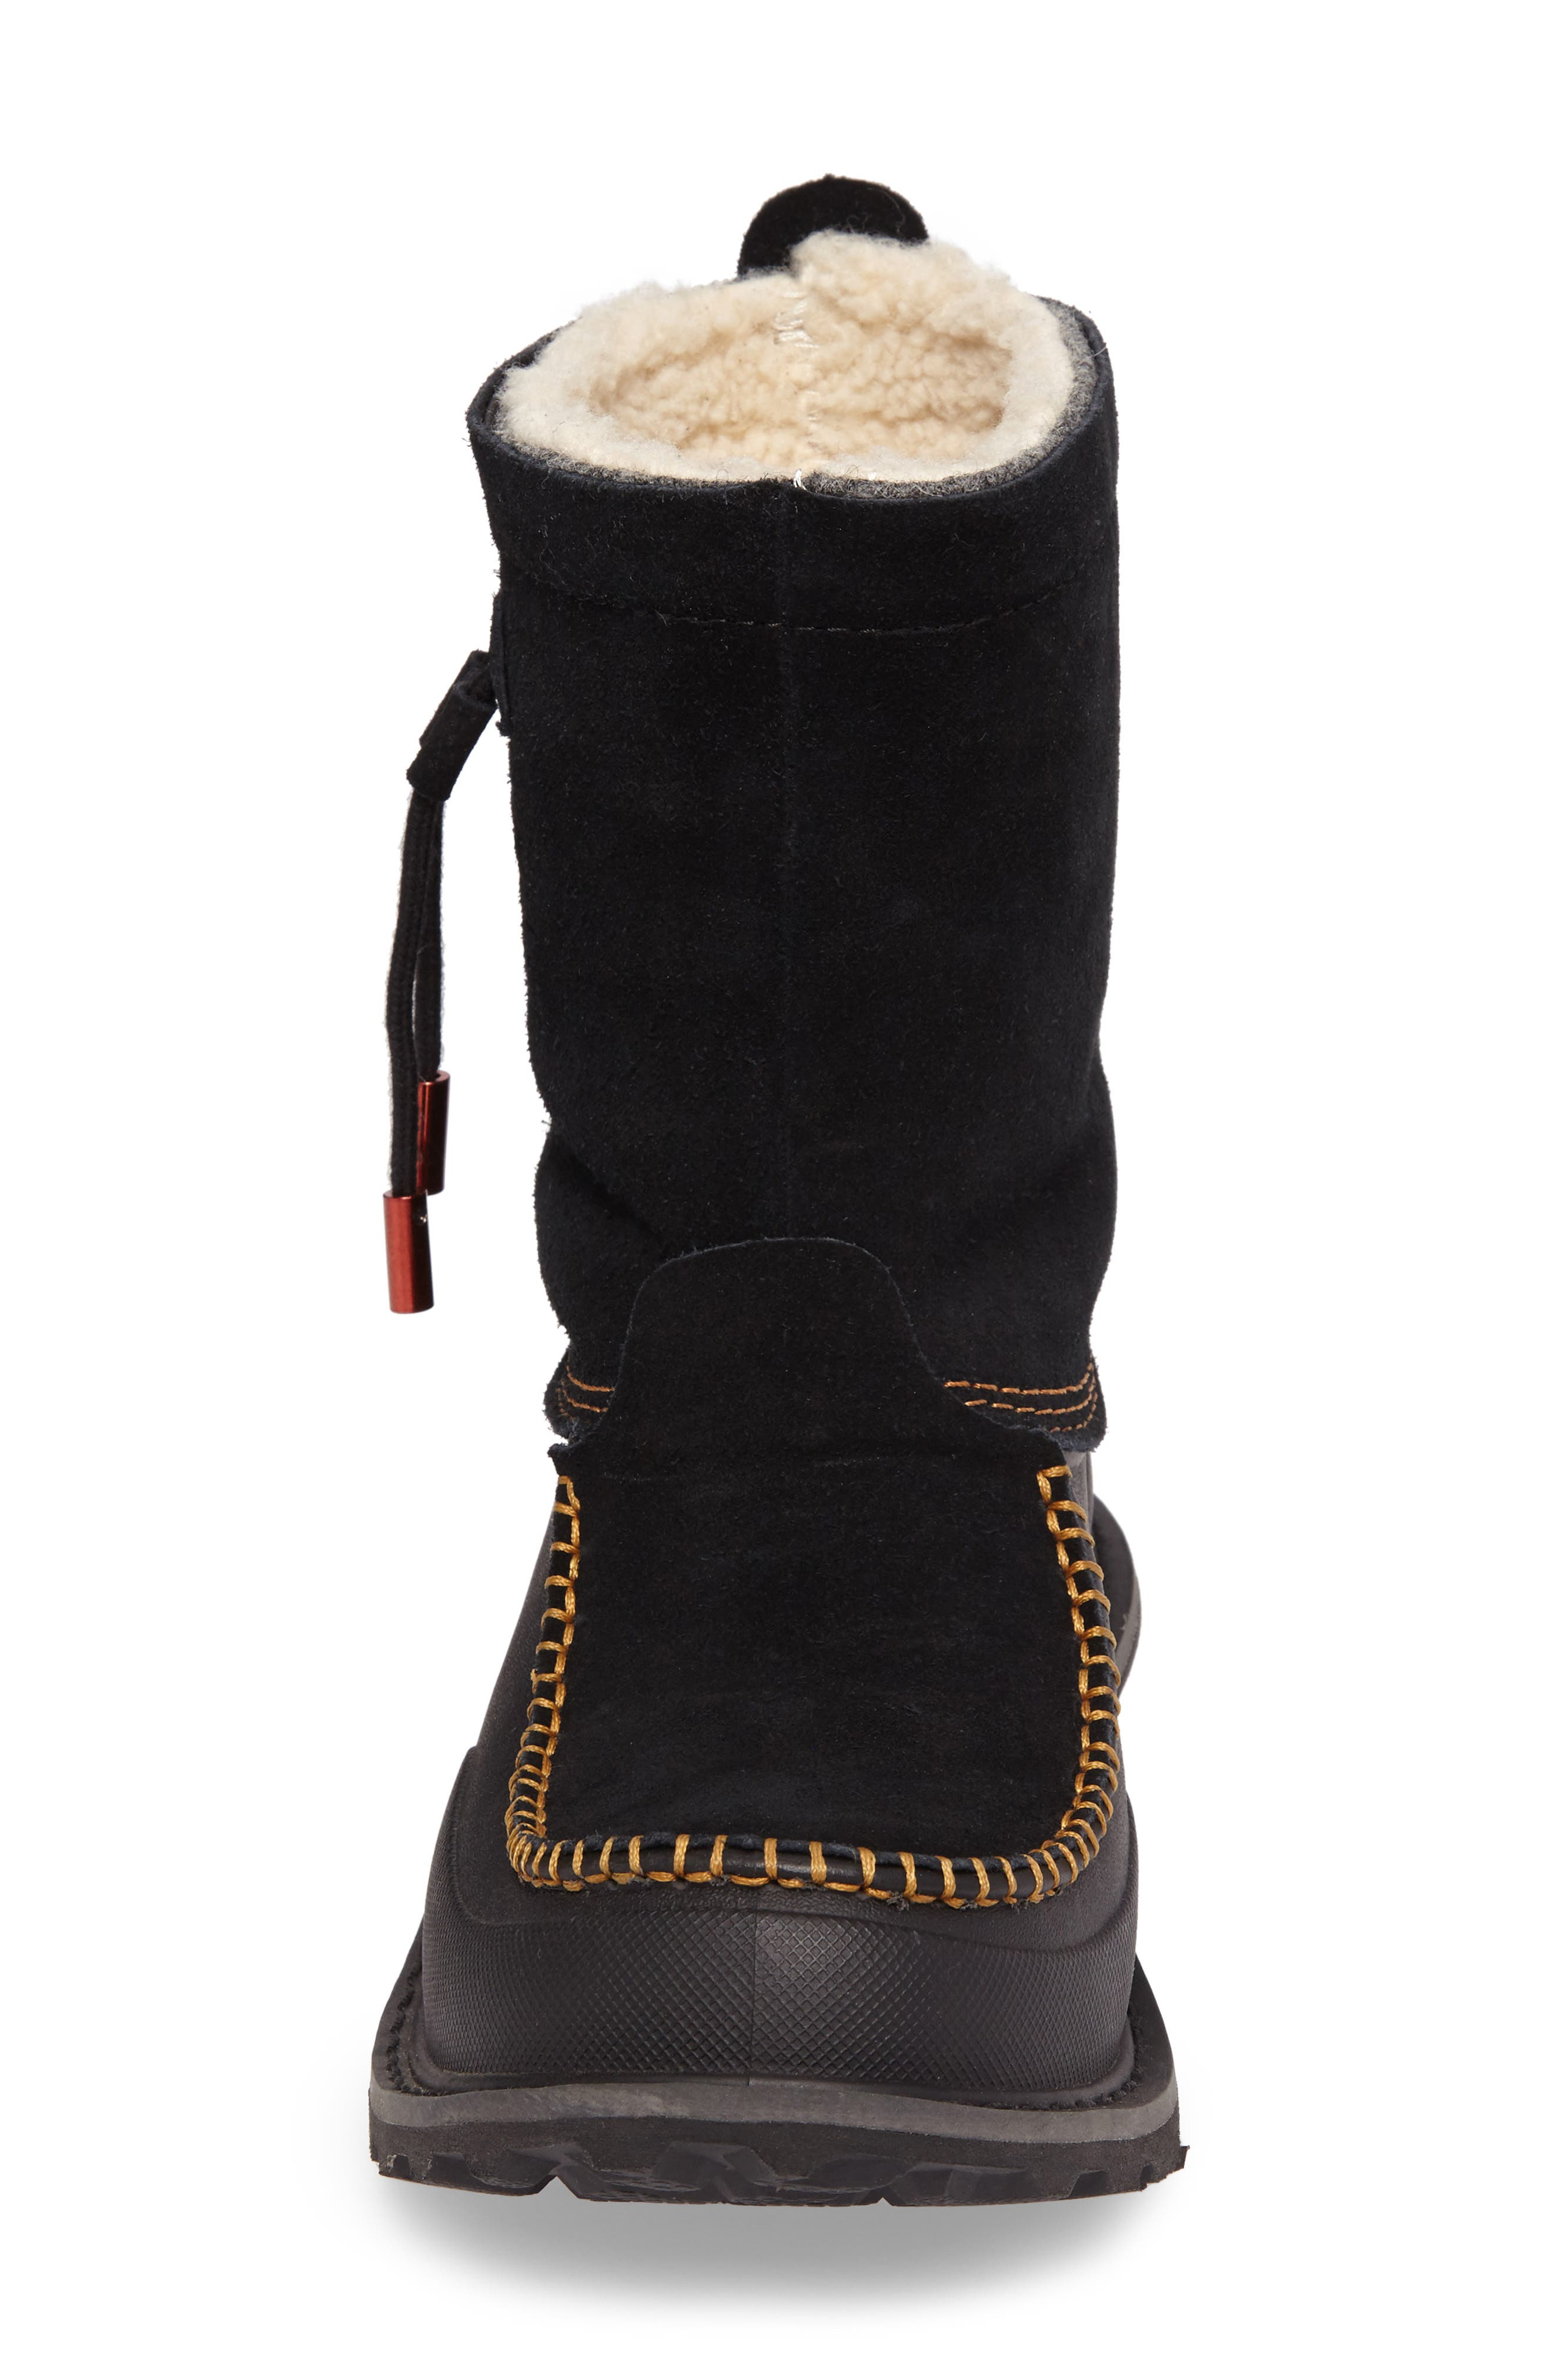 Fully Wooly Waterproof Winter Boot,                             Alternate thumbnail 4, color,                             Black Leather